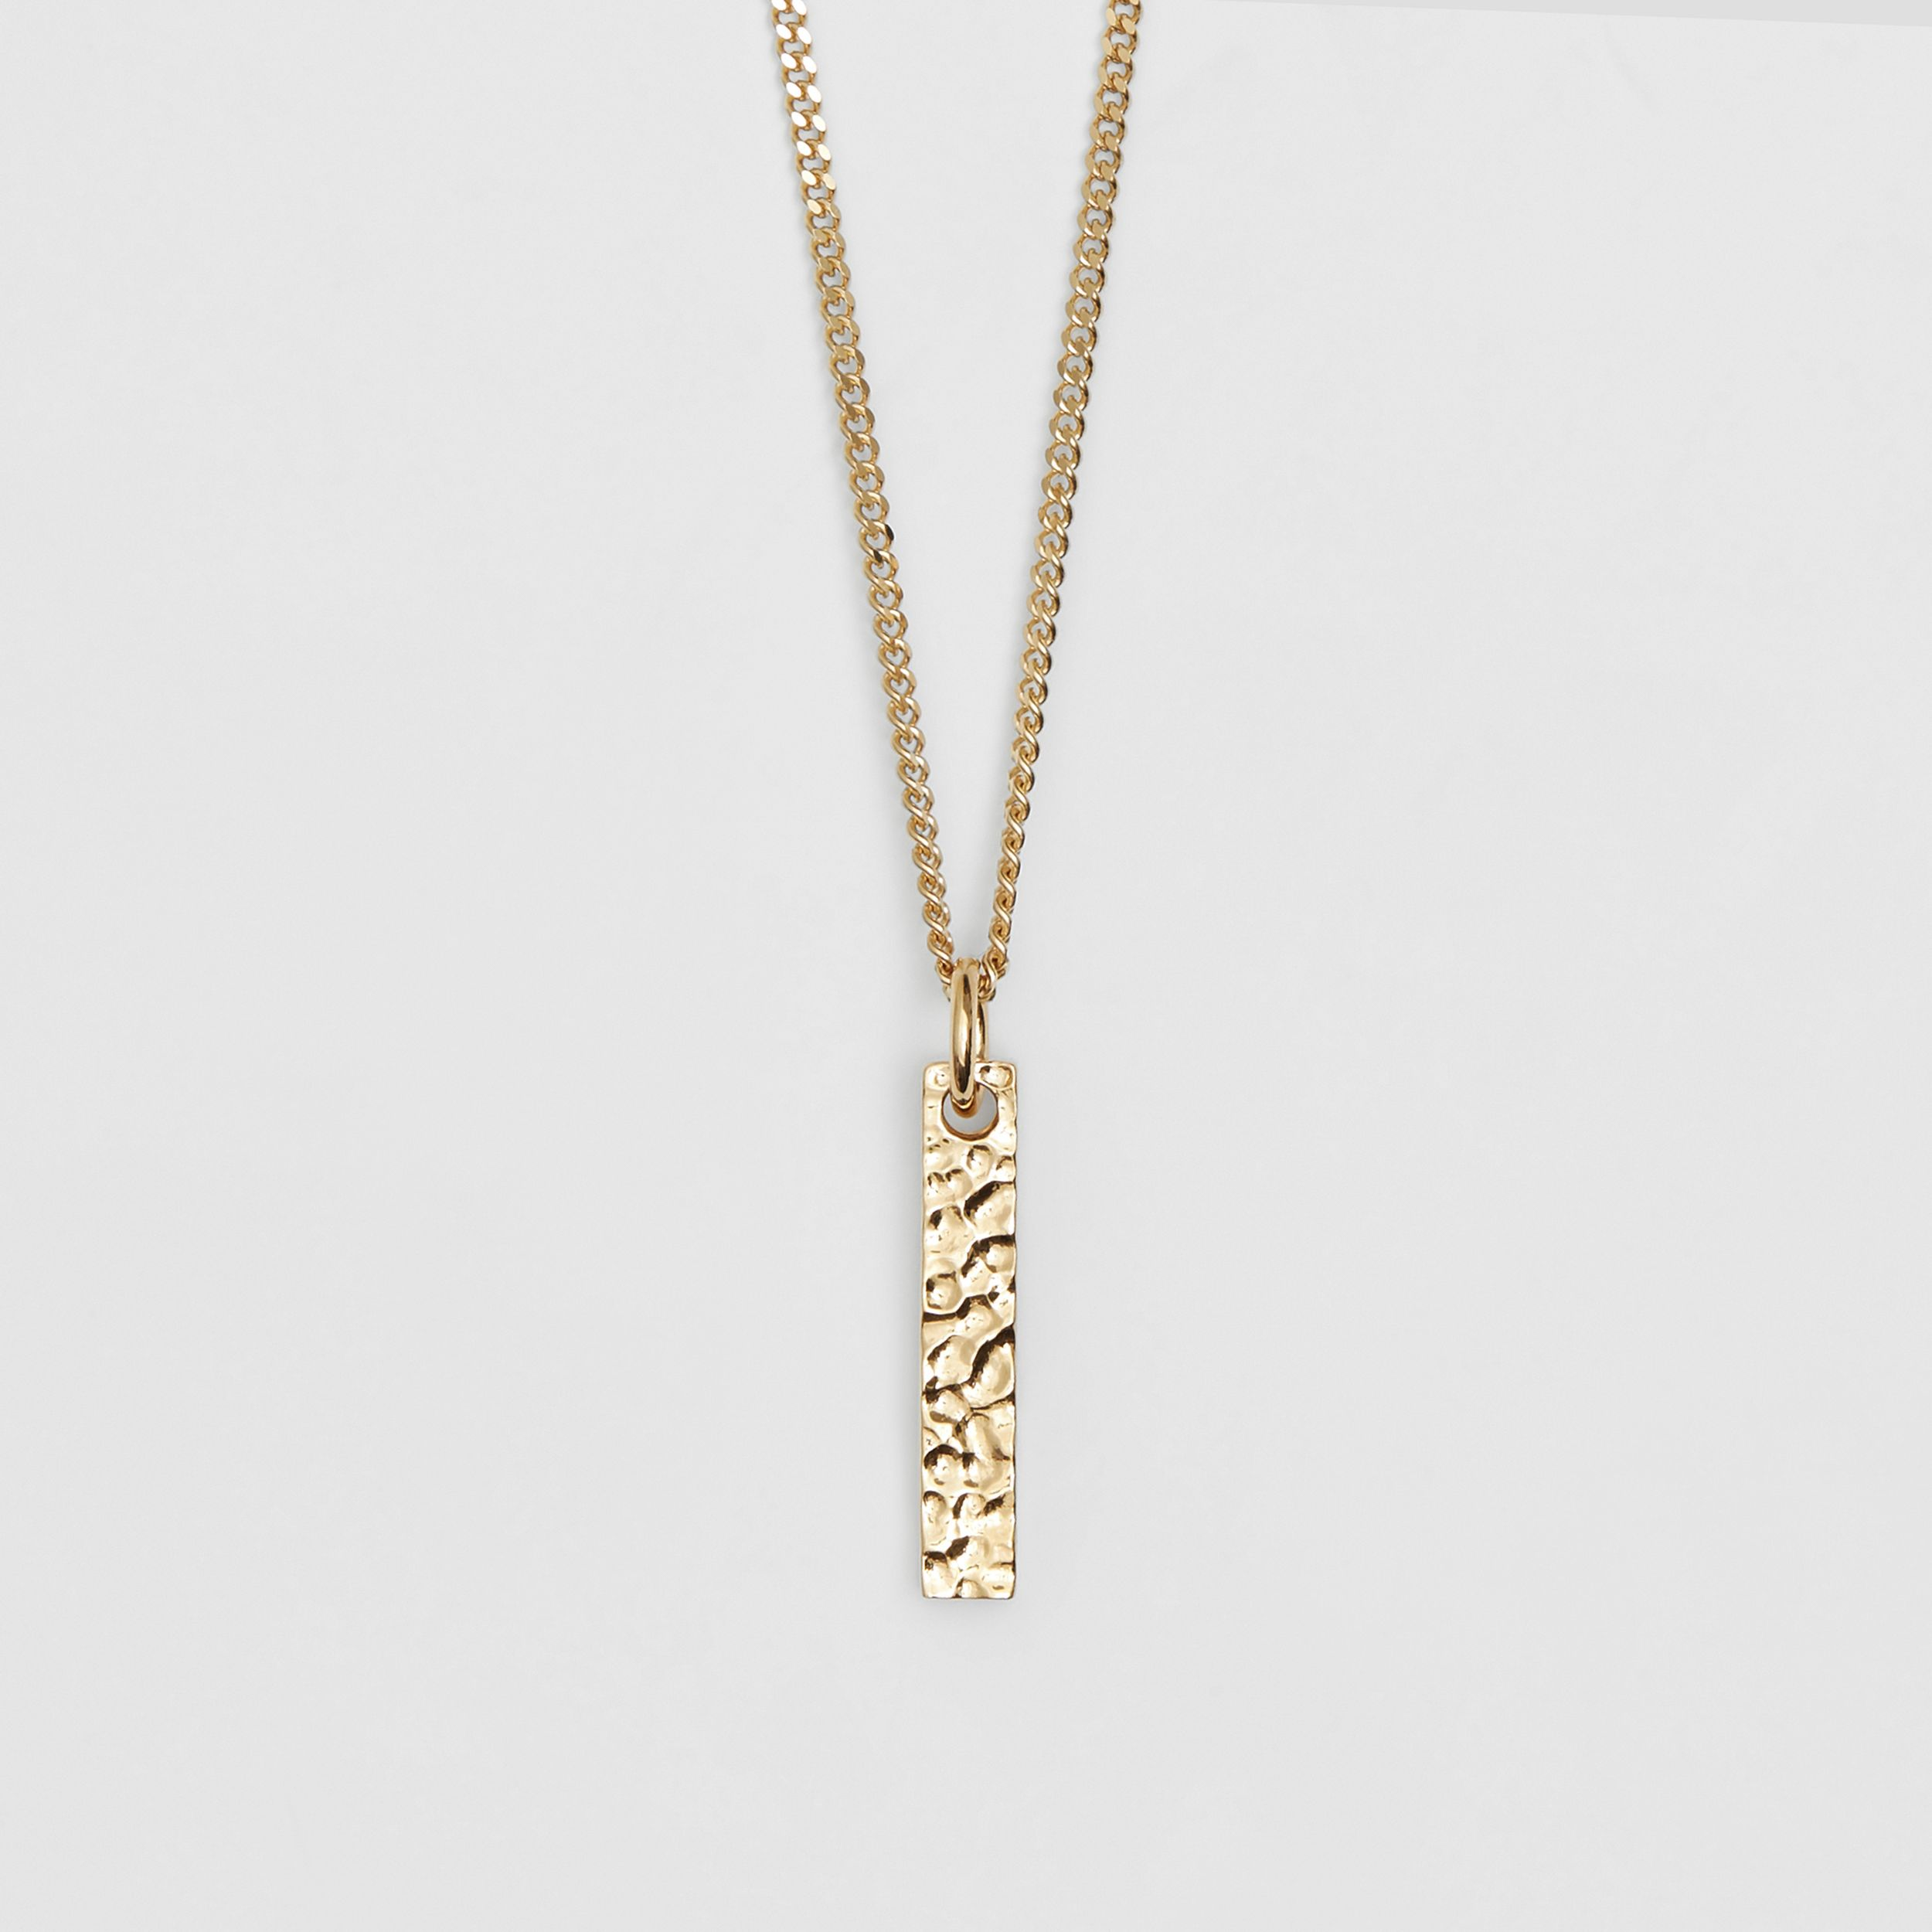 'I' Alphabet Charm Gold-plated Necklace in Light - Women | Burberry Canada - 3